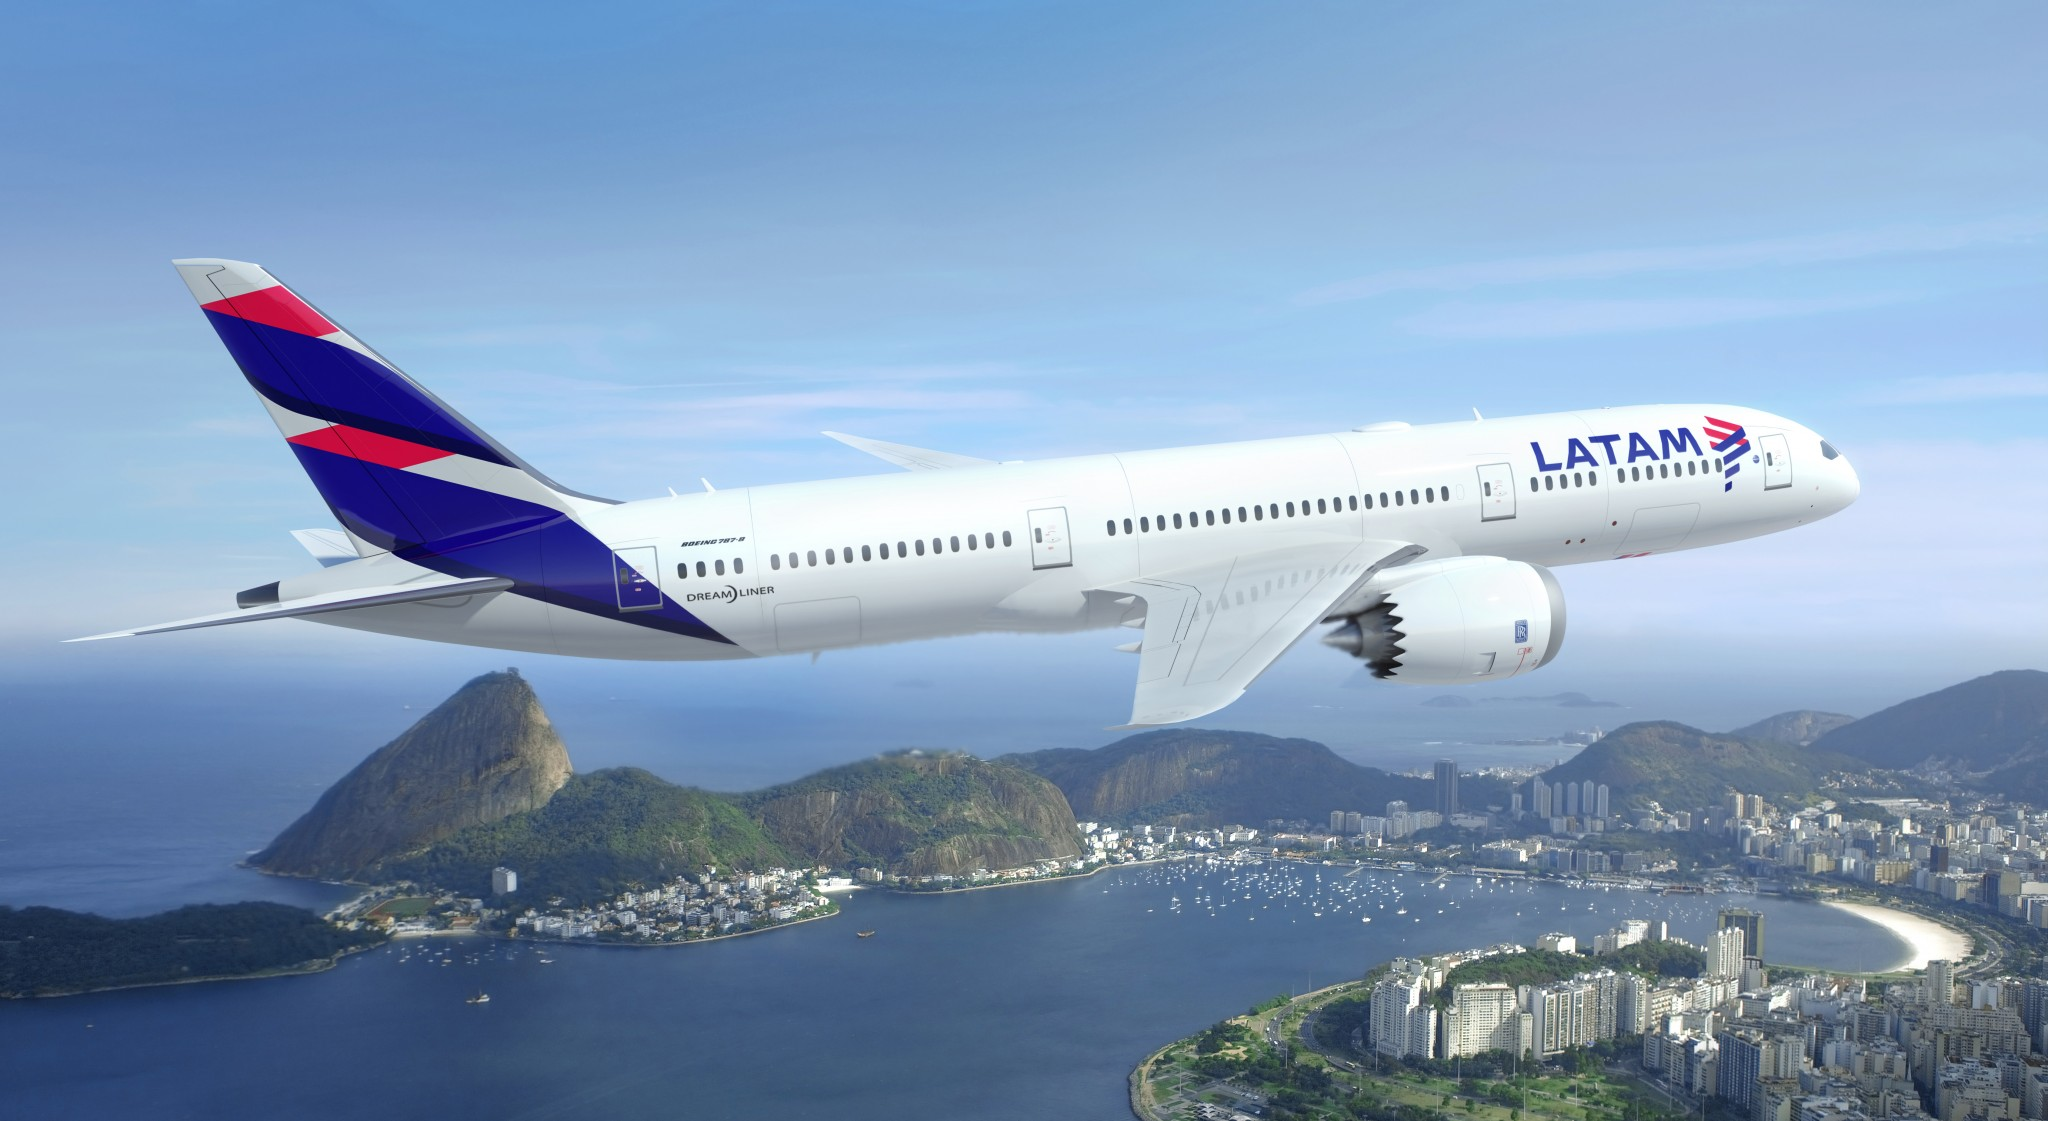 LATAM confirms exit financing offers exceed $5bn